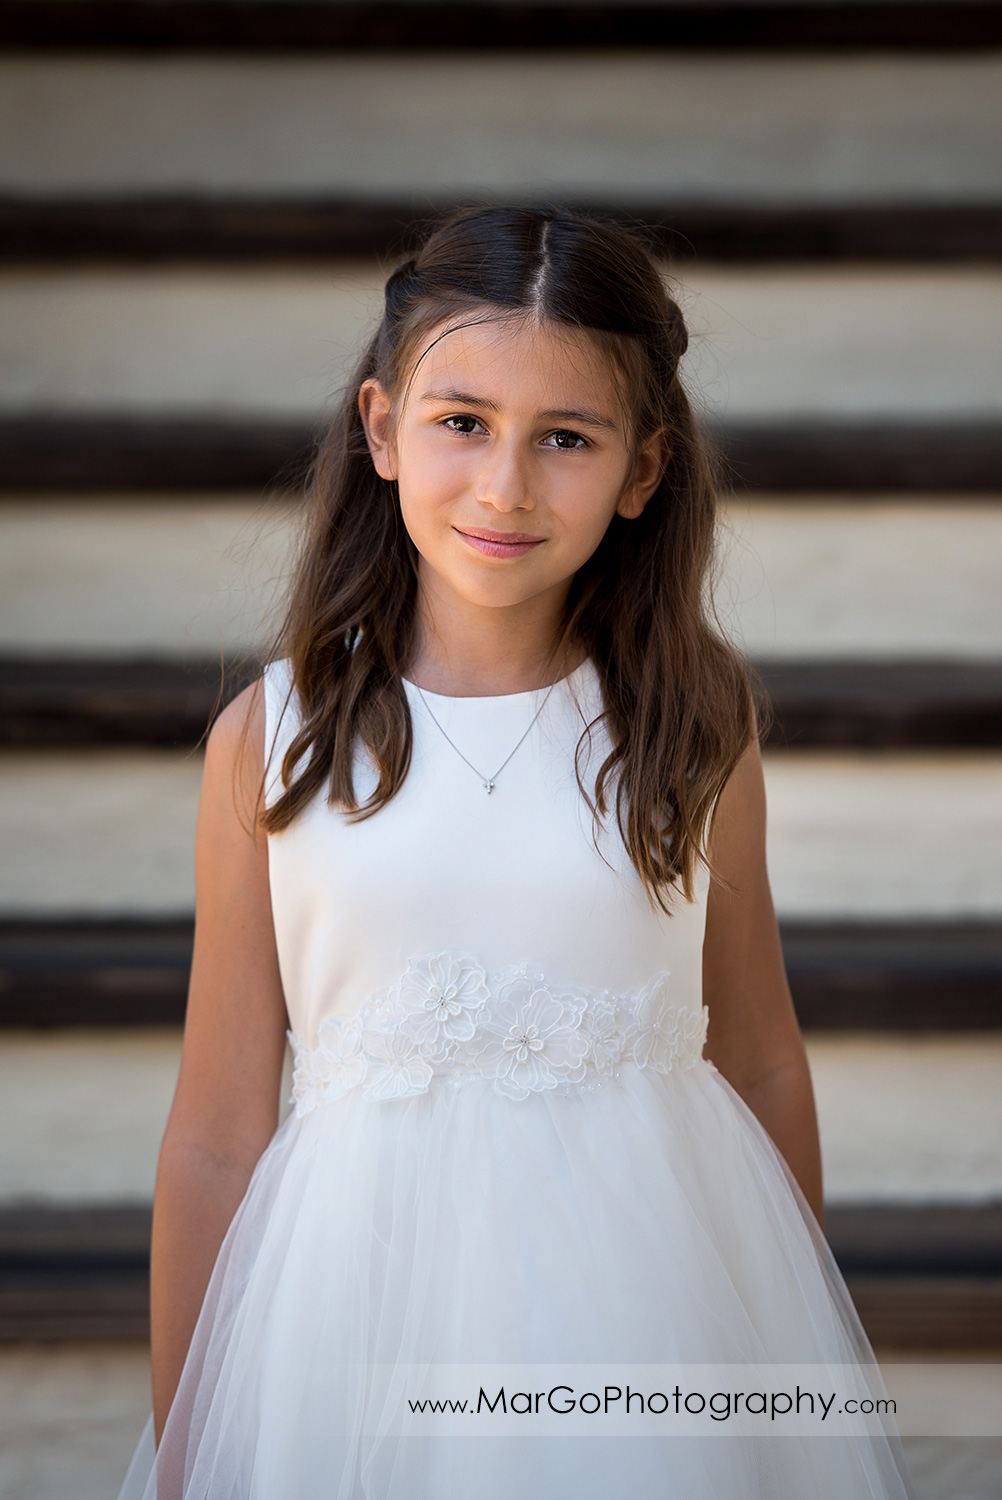 3/4 body portrait of first communion girl in white dress looking into camera at Cafe Wisteria in Menlo Park